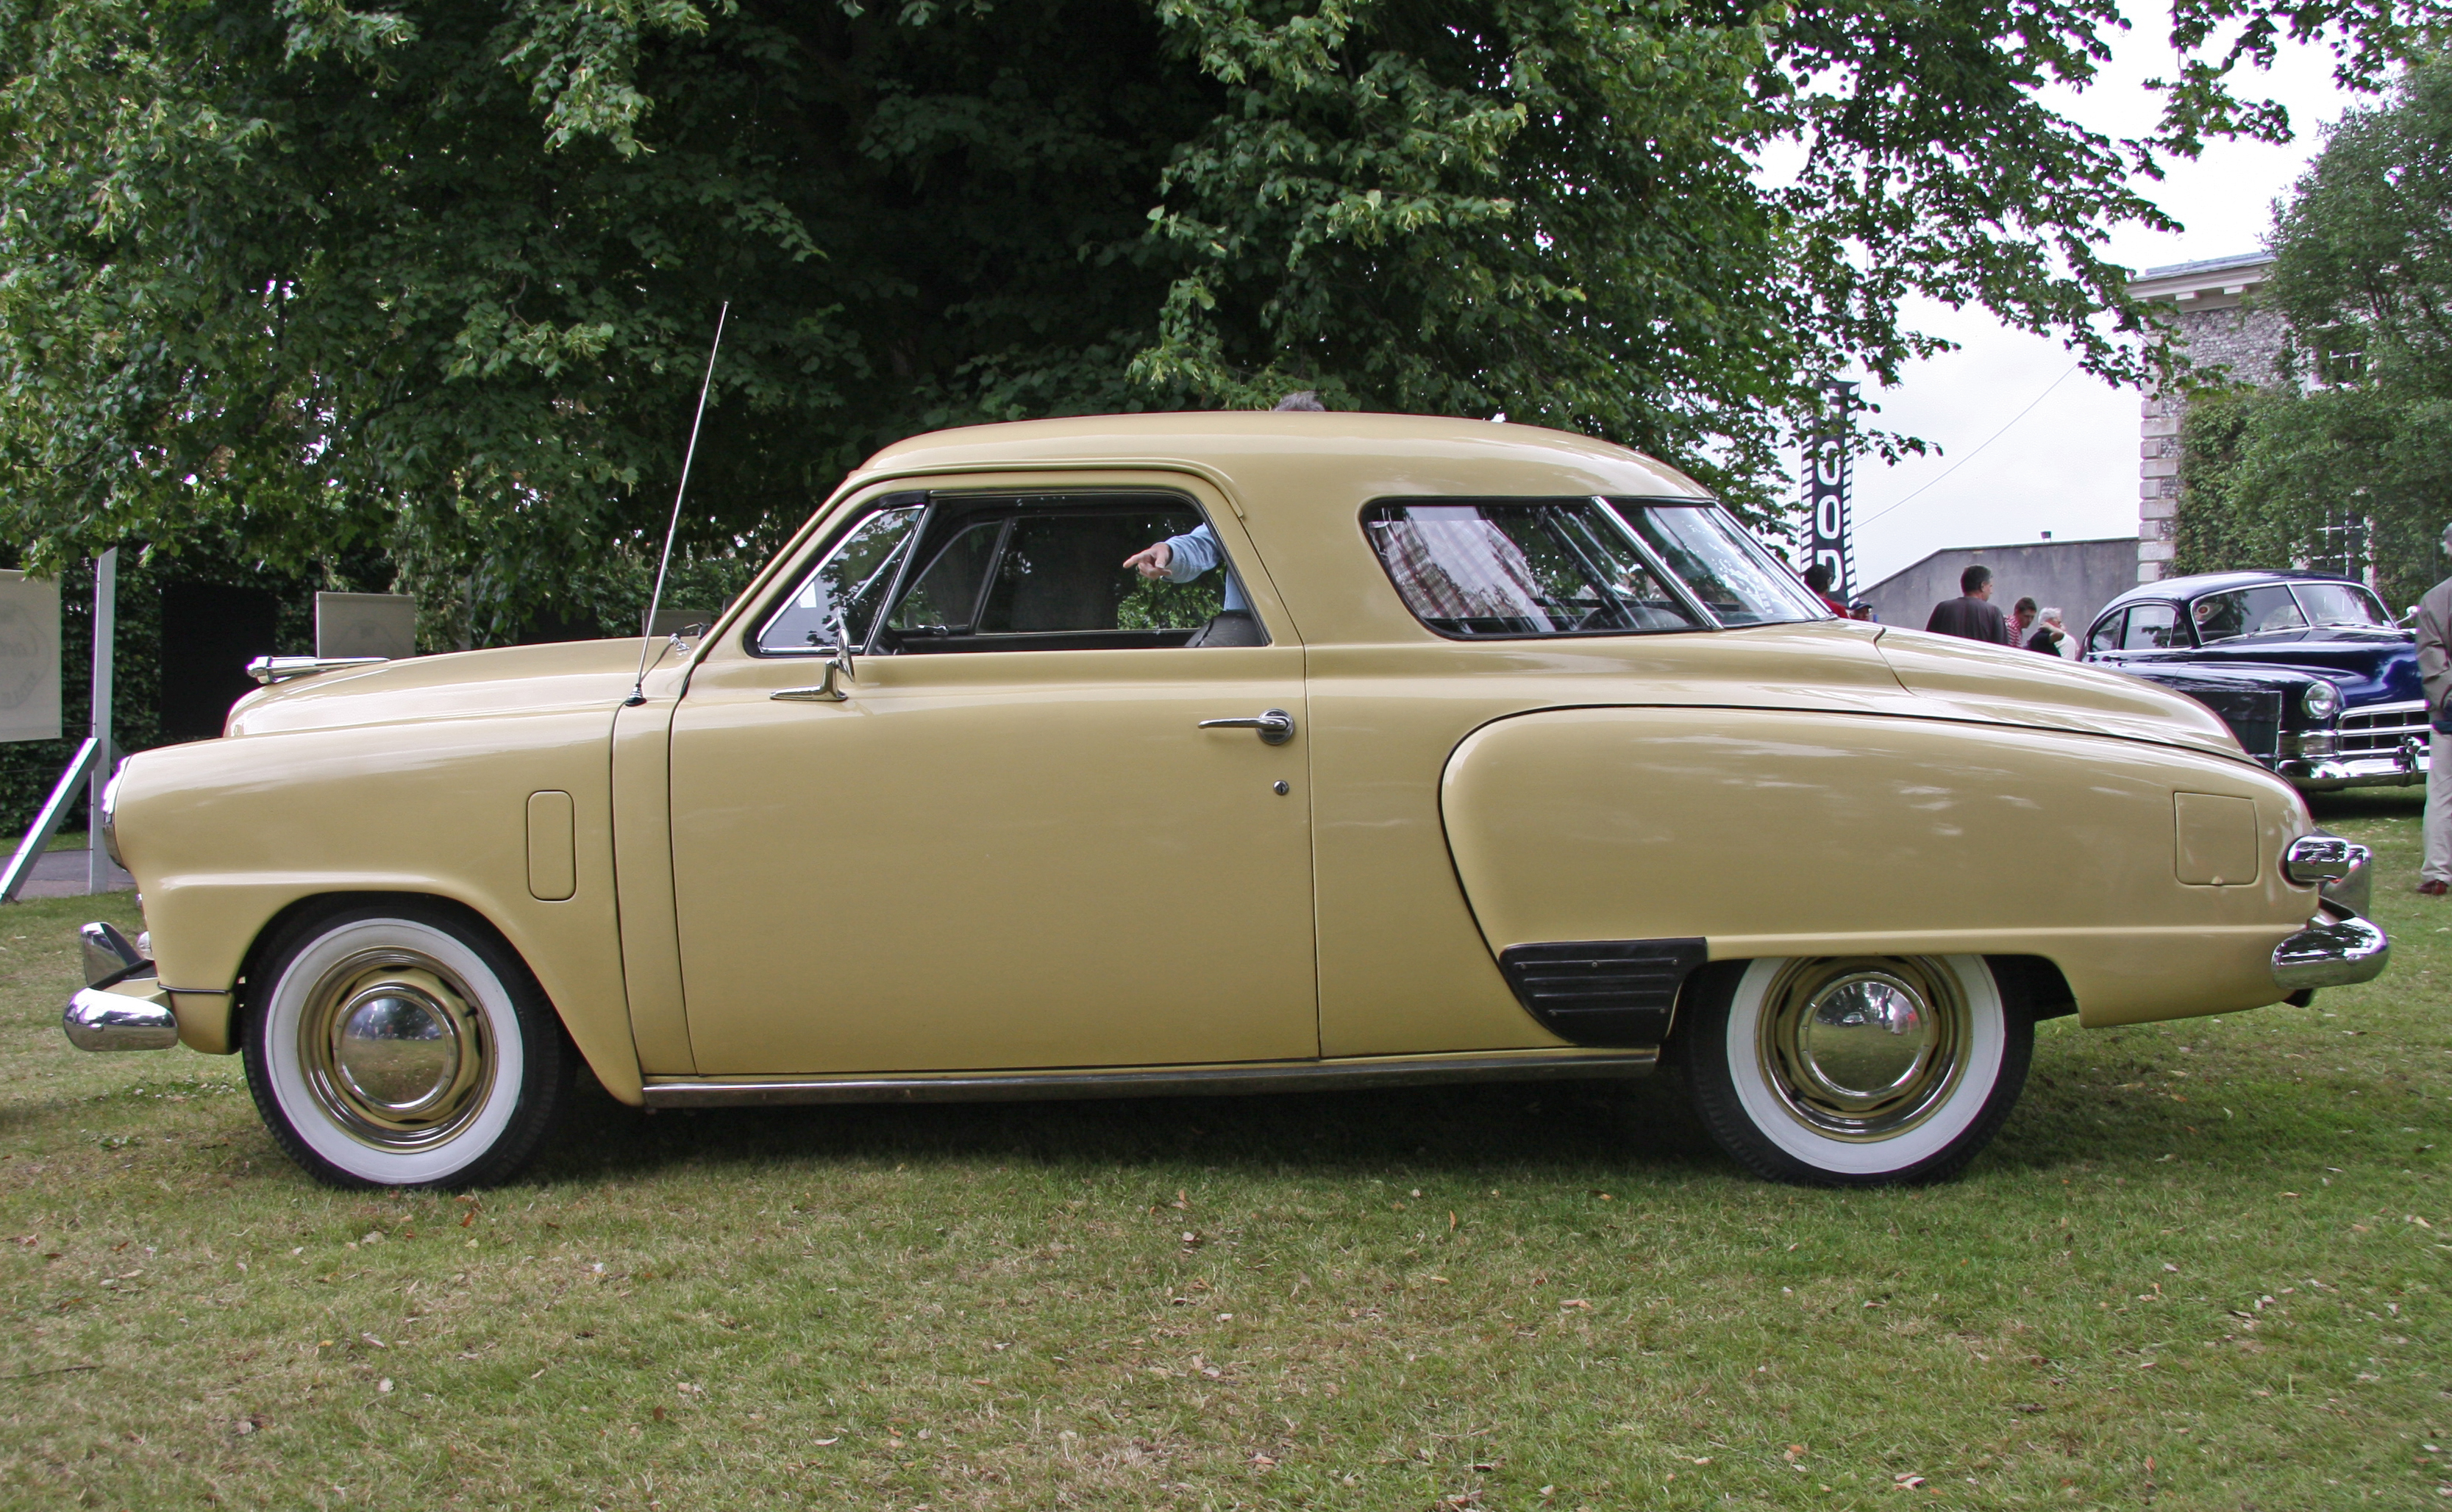 1949 Studebaker Champion 2 Dr. Coupe | Flickr - Photo Sharing!